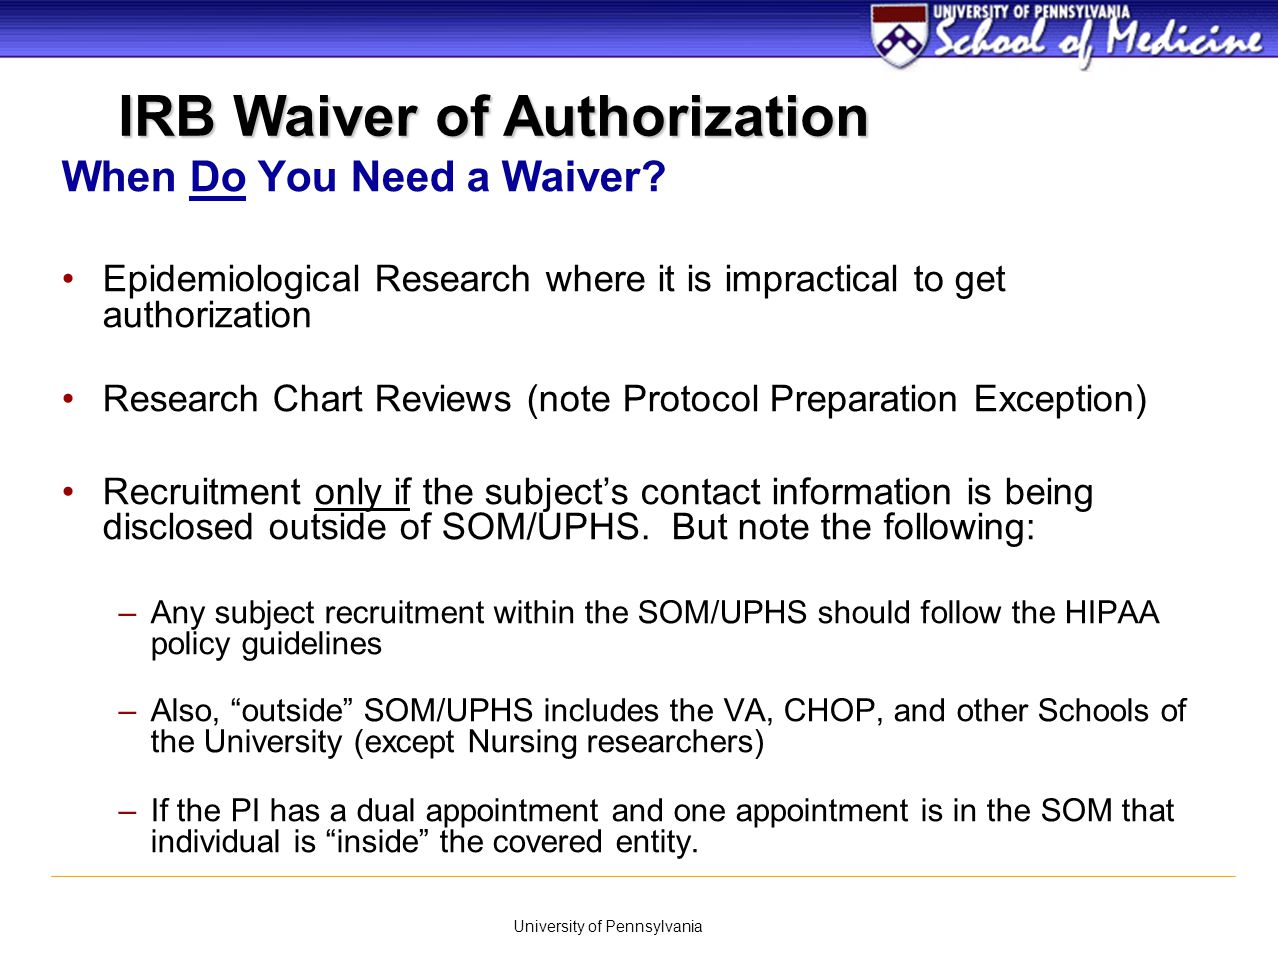 University of Pennsylvania IRB Waiver of Authorization When Do You Need a Waiver? Epidemiological Research where it is impractical to get authorizatio